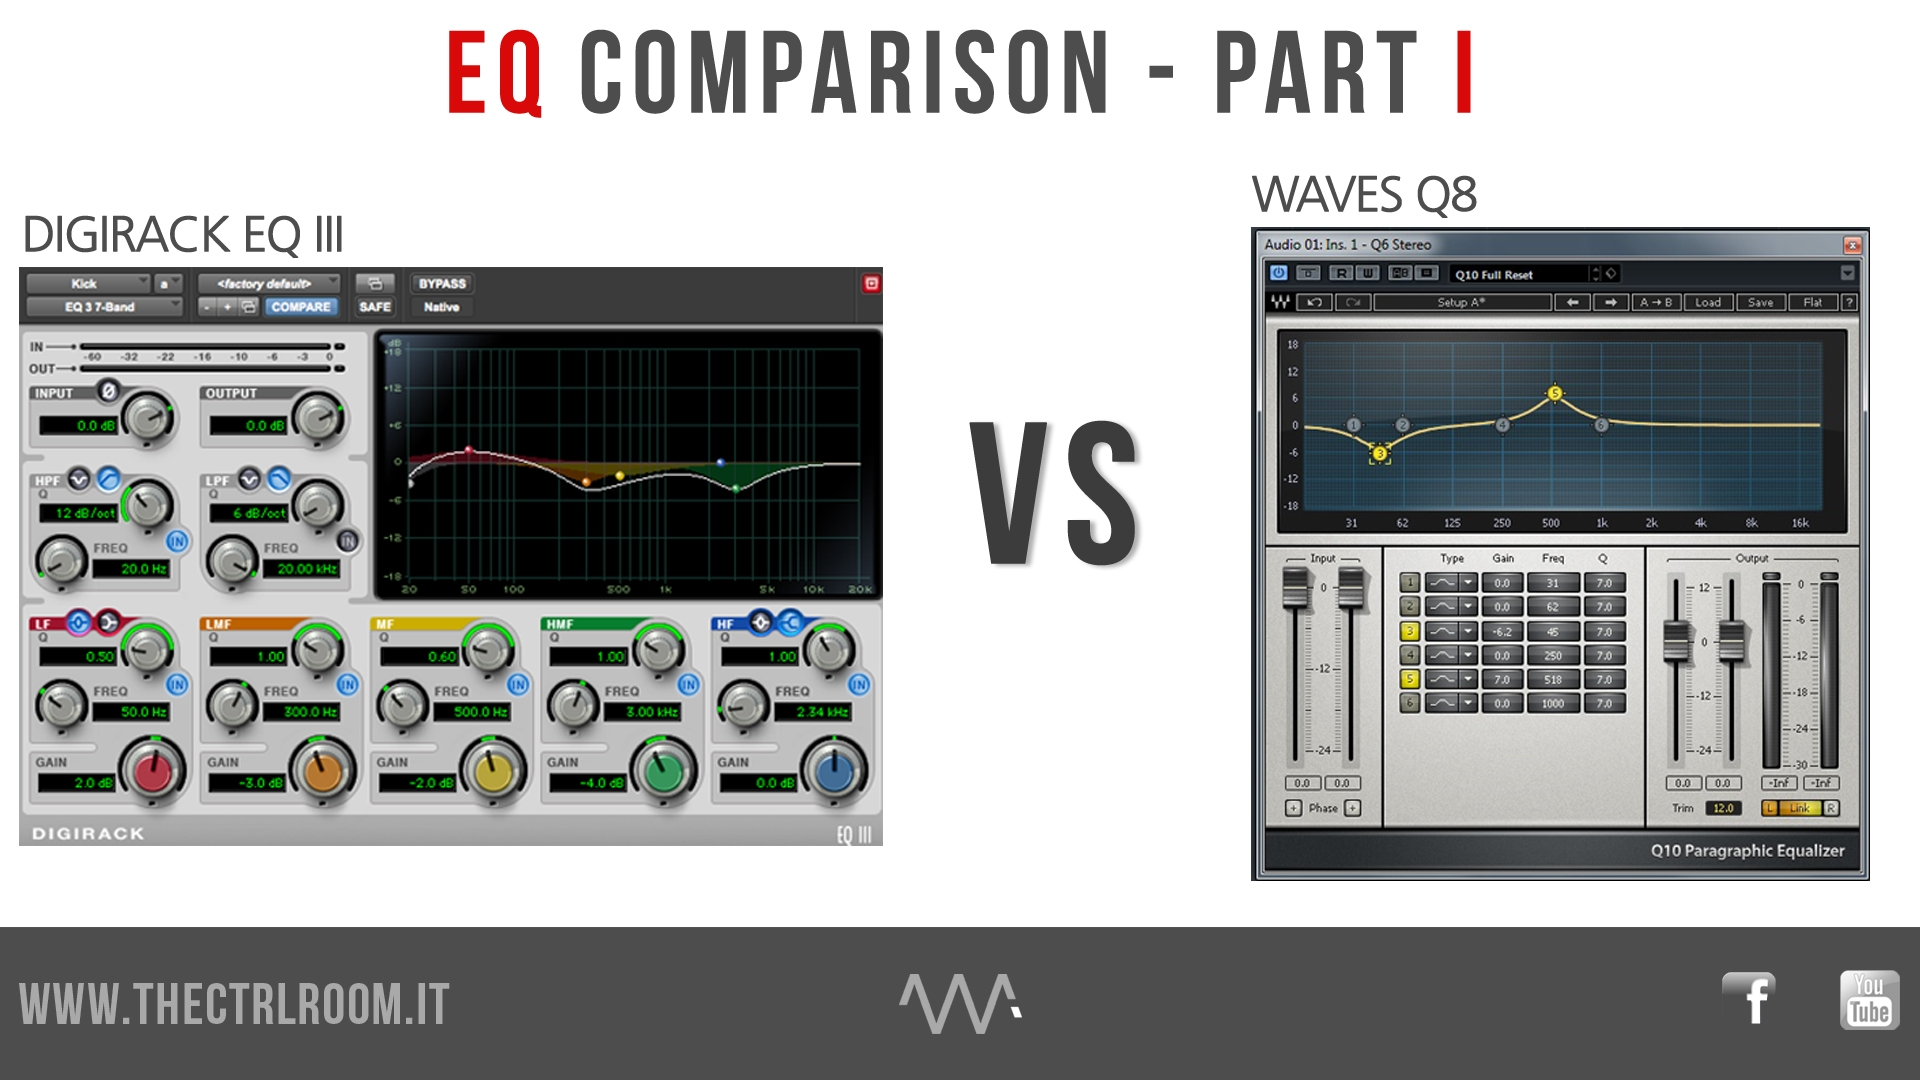 AVID DigiRack EQ III vs WAVES Q8 EQ Age of Audio - AVID DigiRack EQ III  vs WAVES Q8 EQ